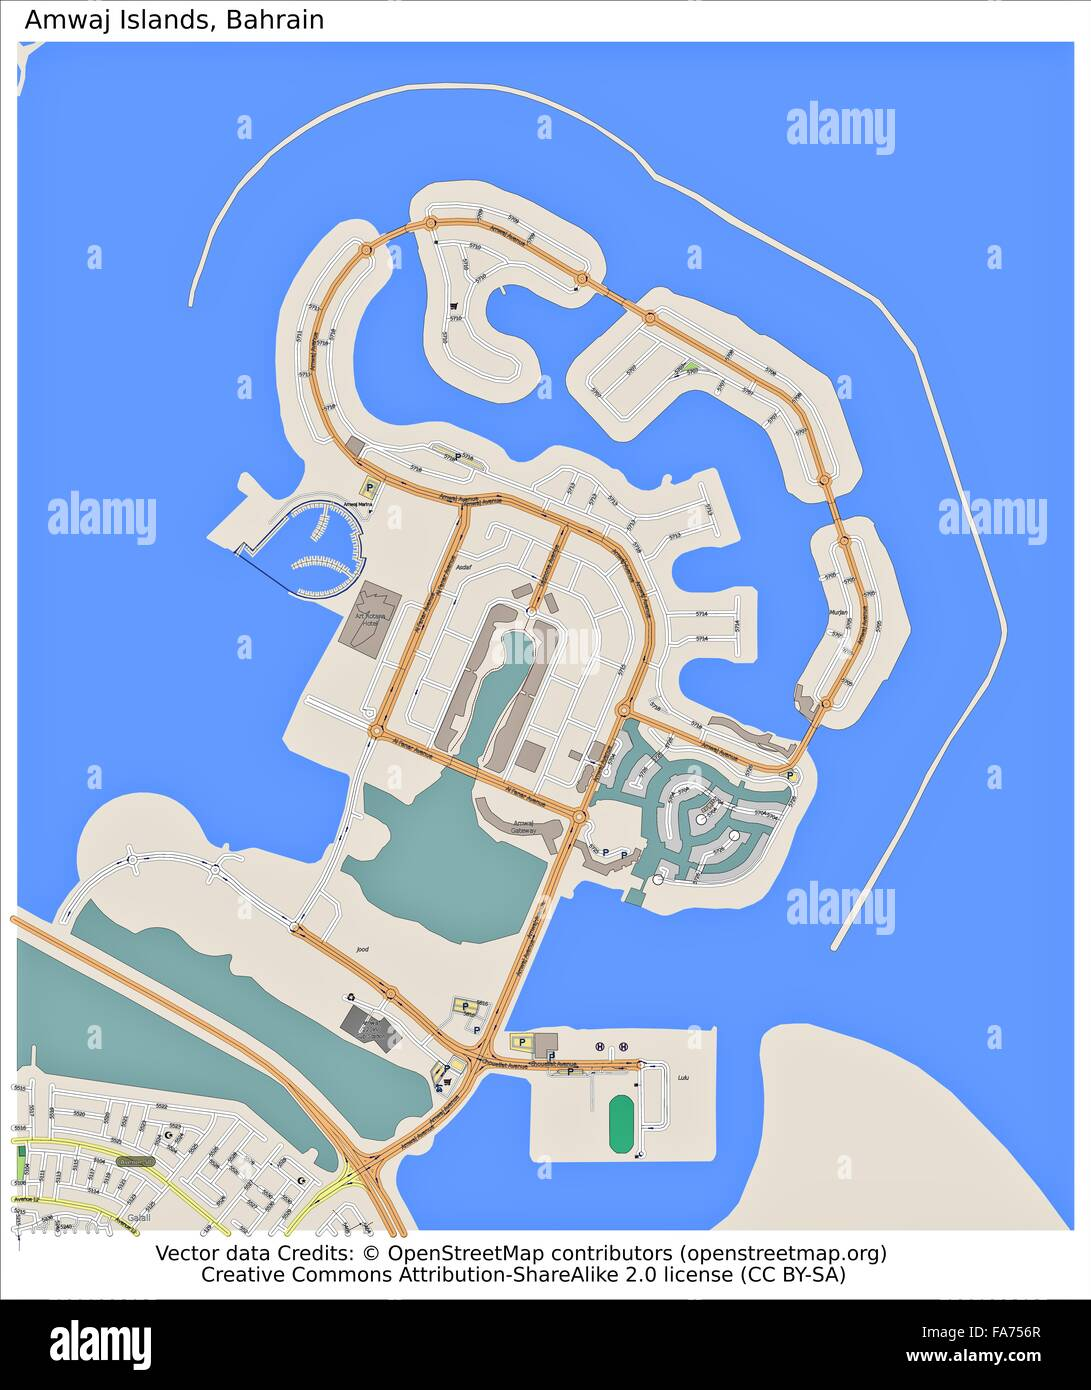 Amwaj Islands Bahrain location map Stock Photo: 92356175 - Alamy